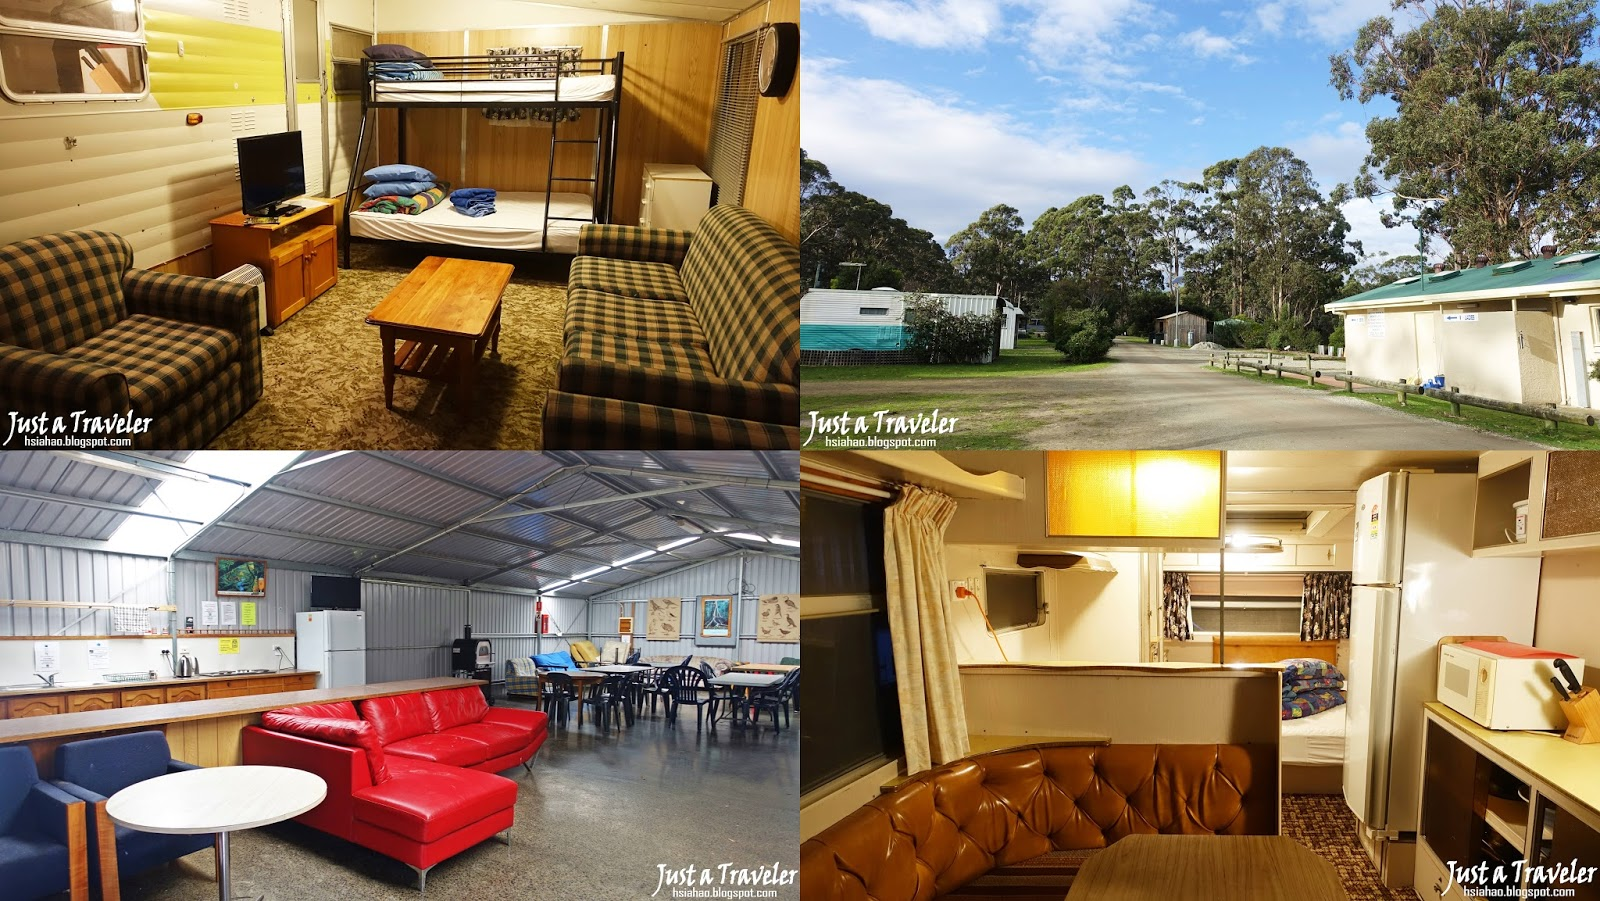 tasmania-cheap-hotel-airbnb-accommodation-best-autralia-travel